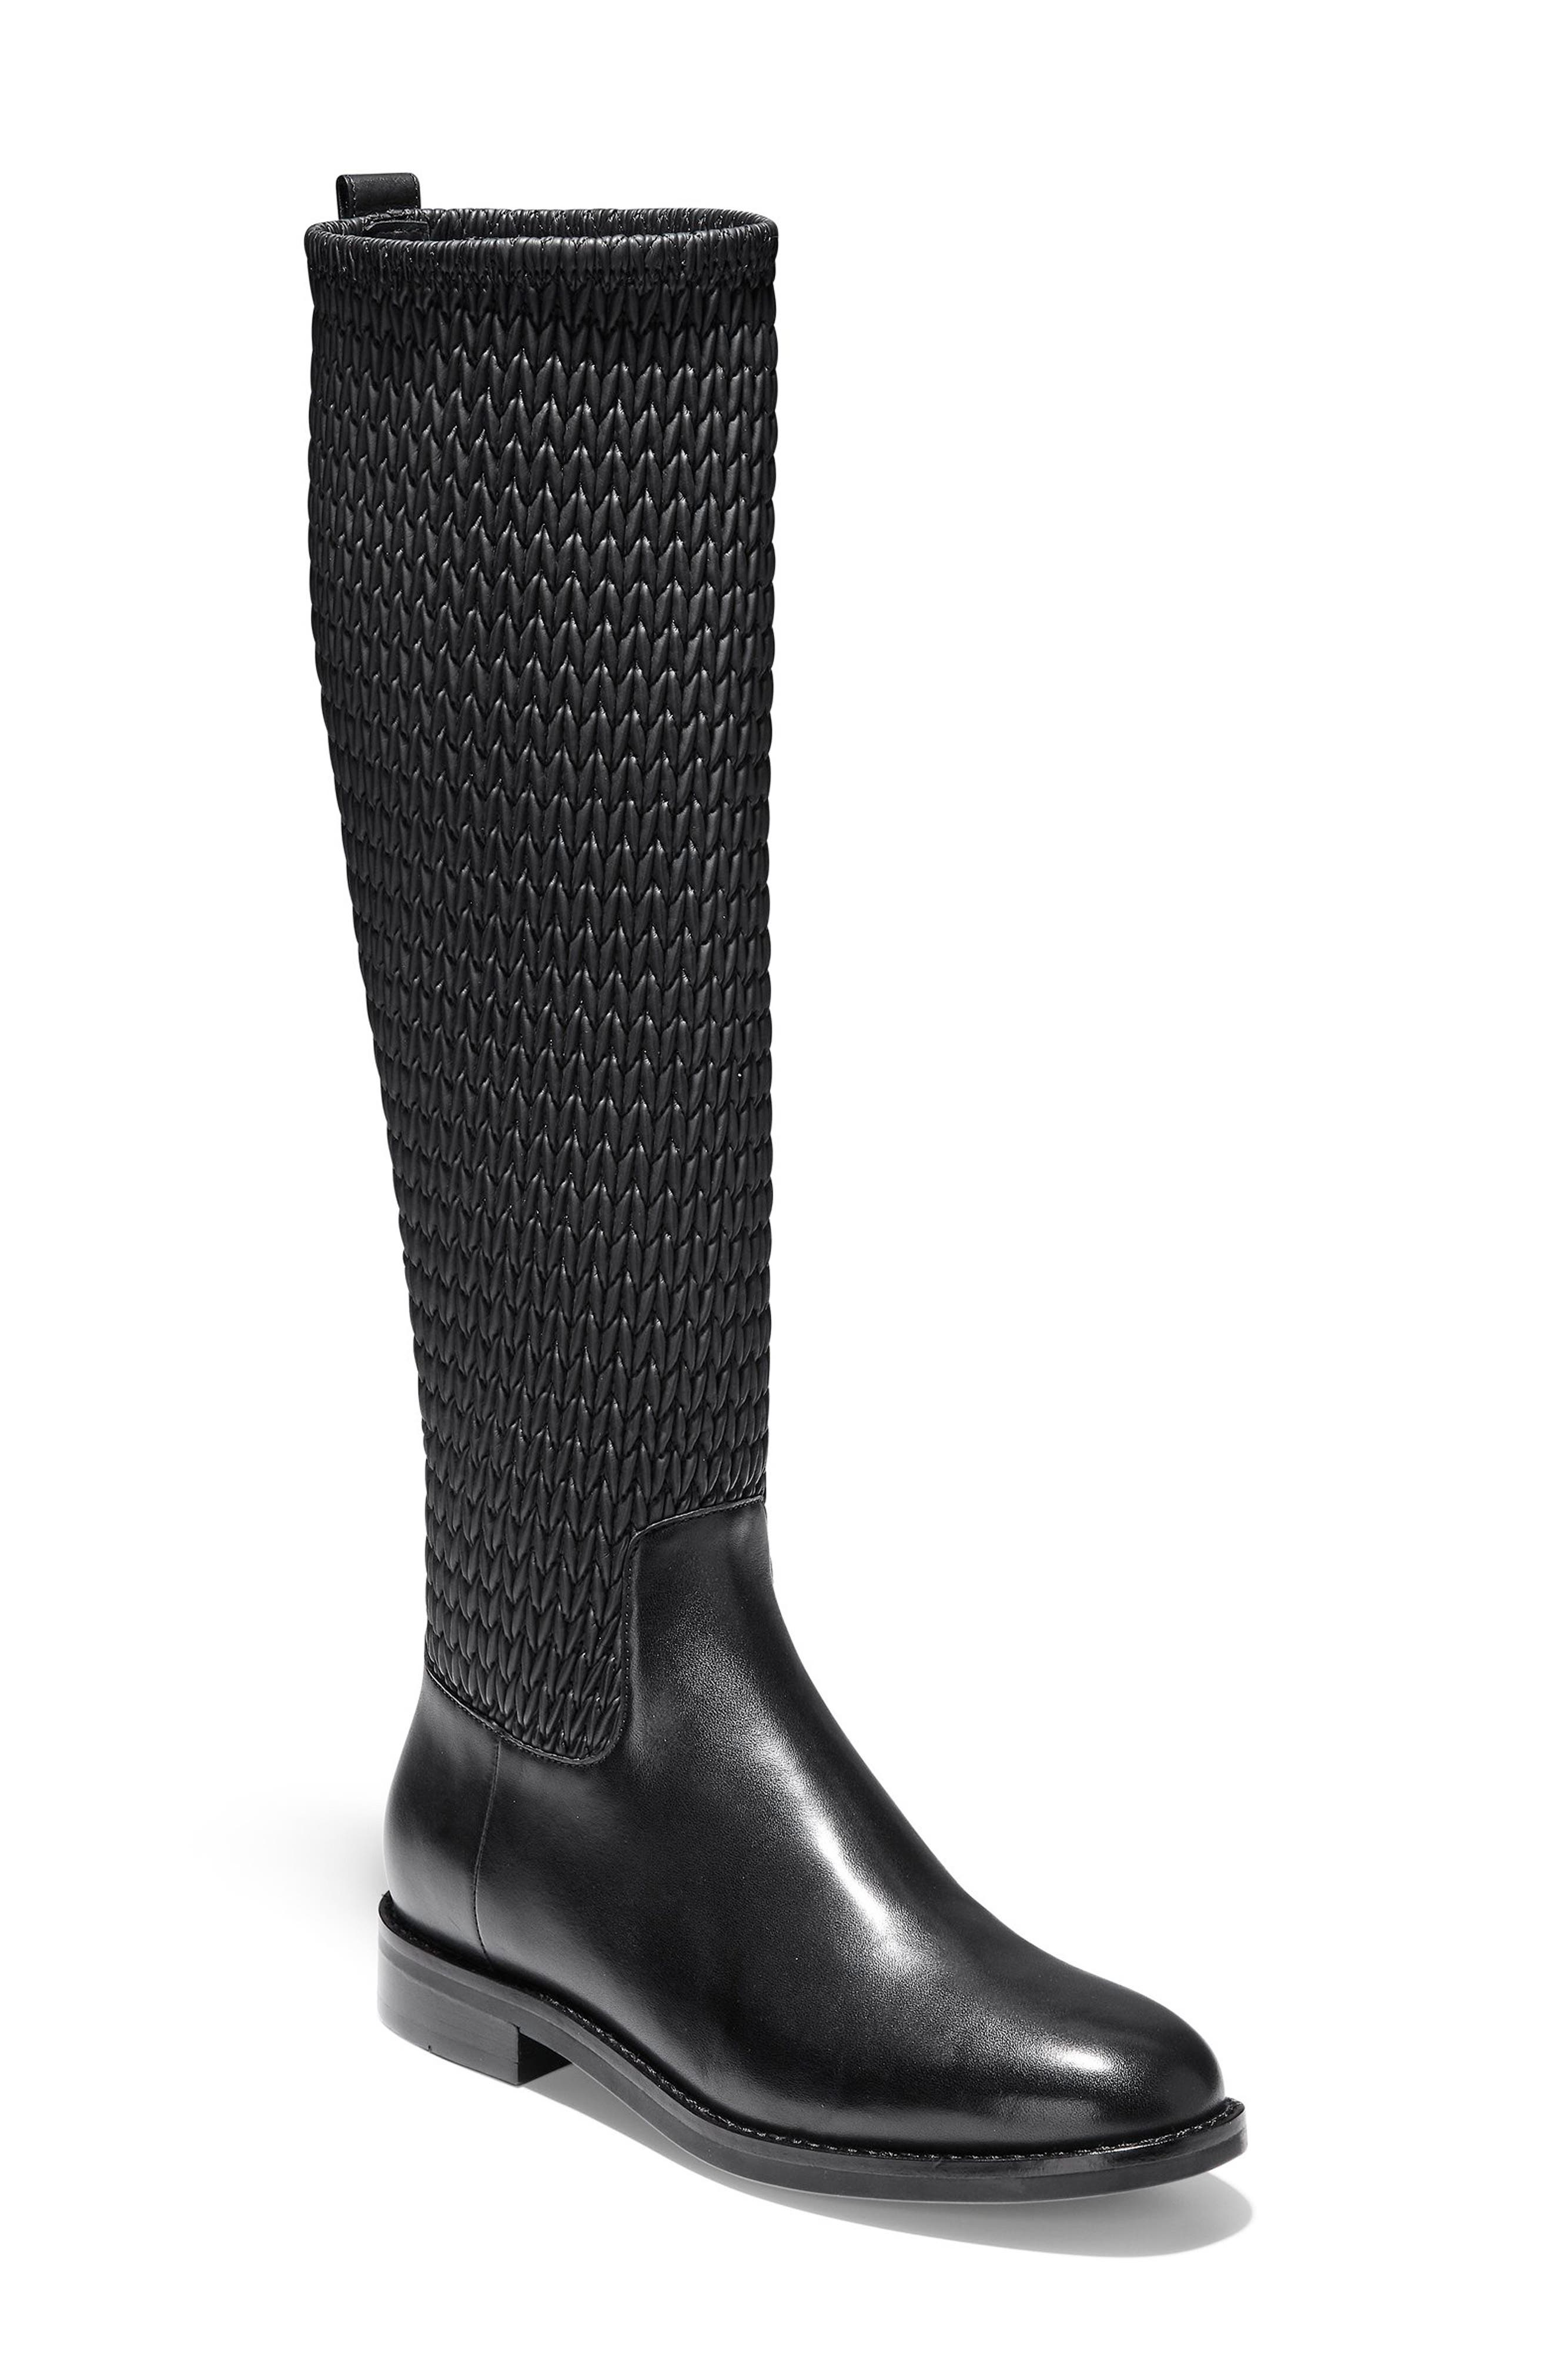 Lexi Grand Knee High Stretch Boot,                             Main thumbnail 1, color,                             BLACK LEATHER